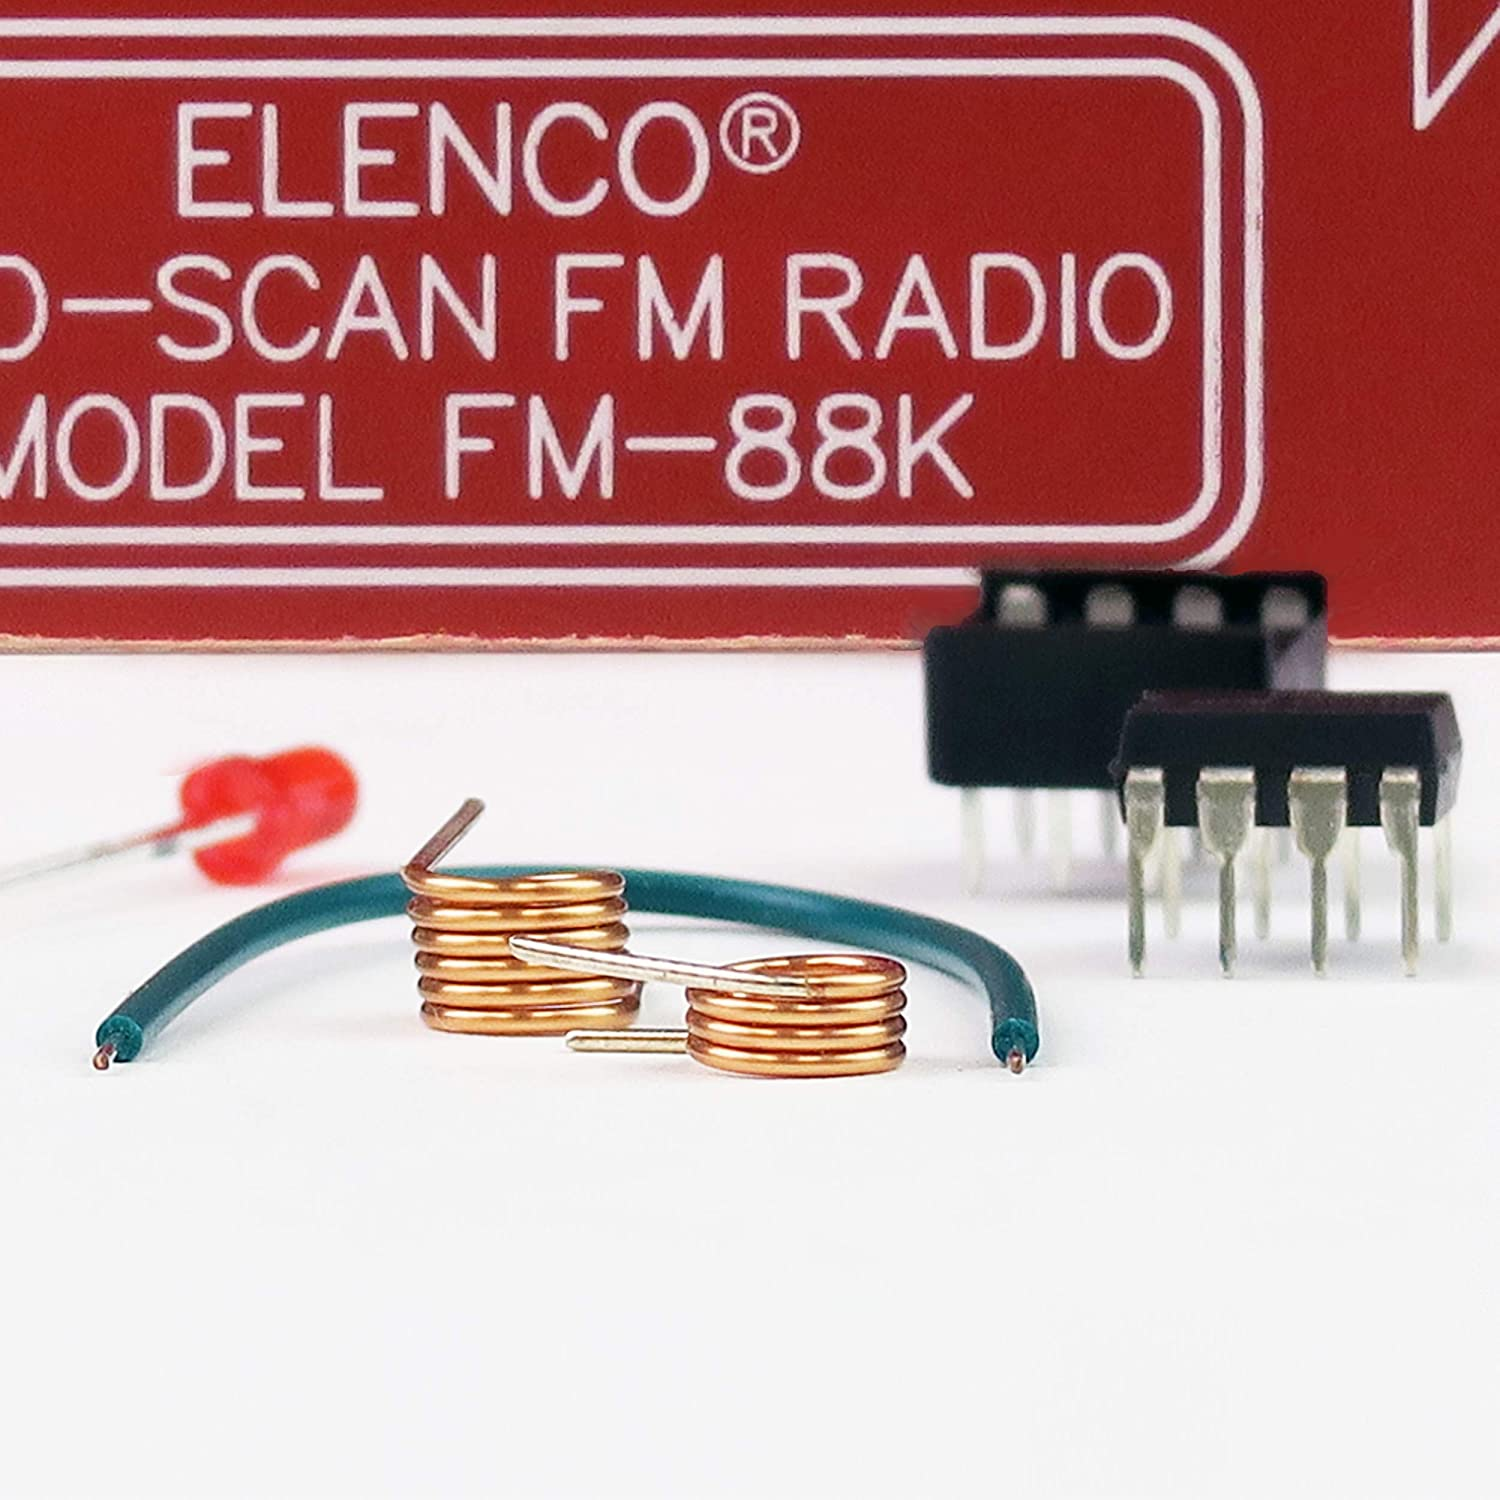 Elenco Fm Radio Kit Toys Games Selling Leads Sell Pcba Printed Circuit Board Assembly